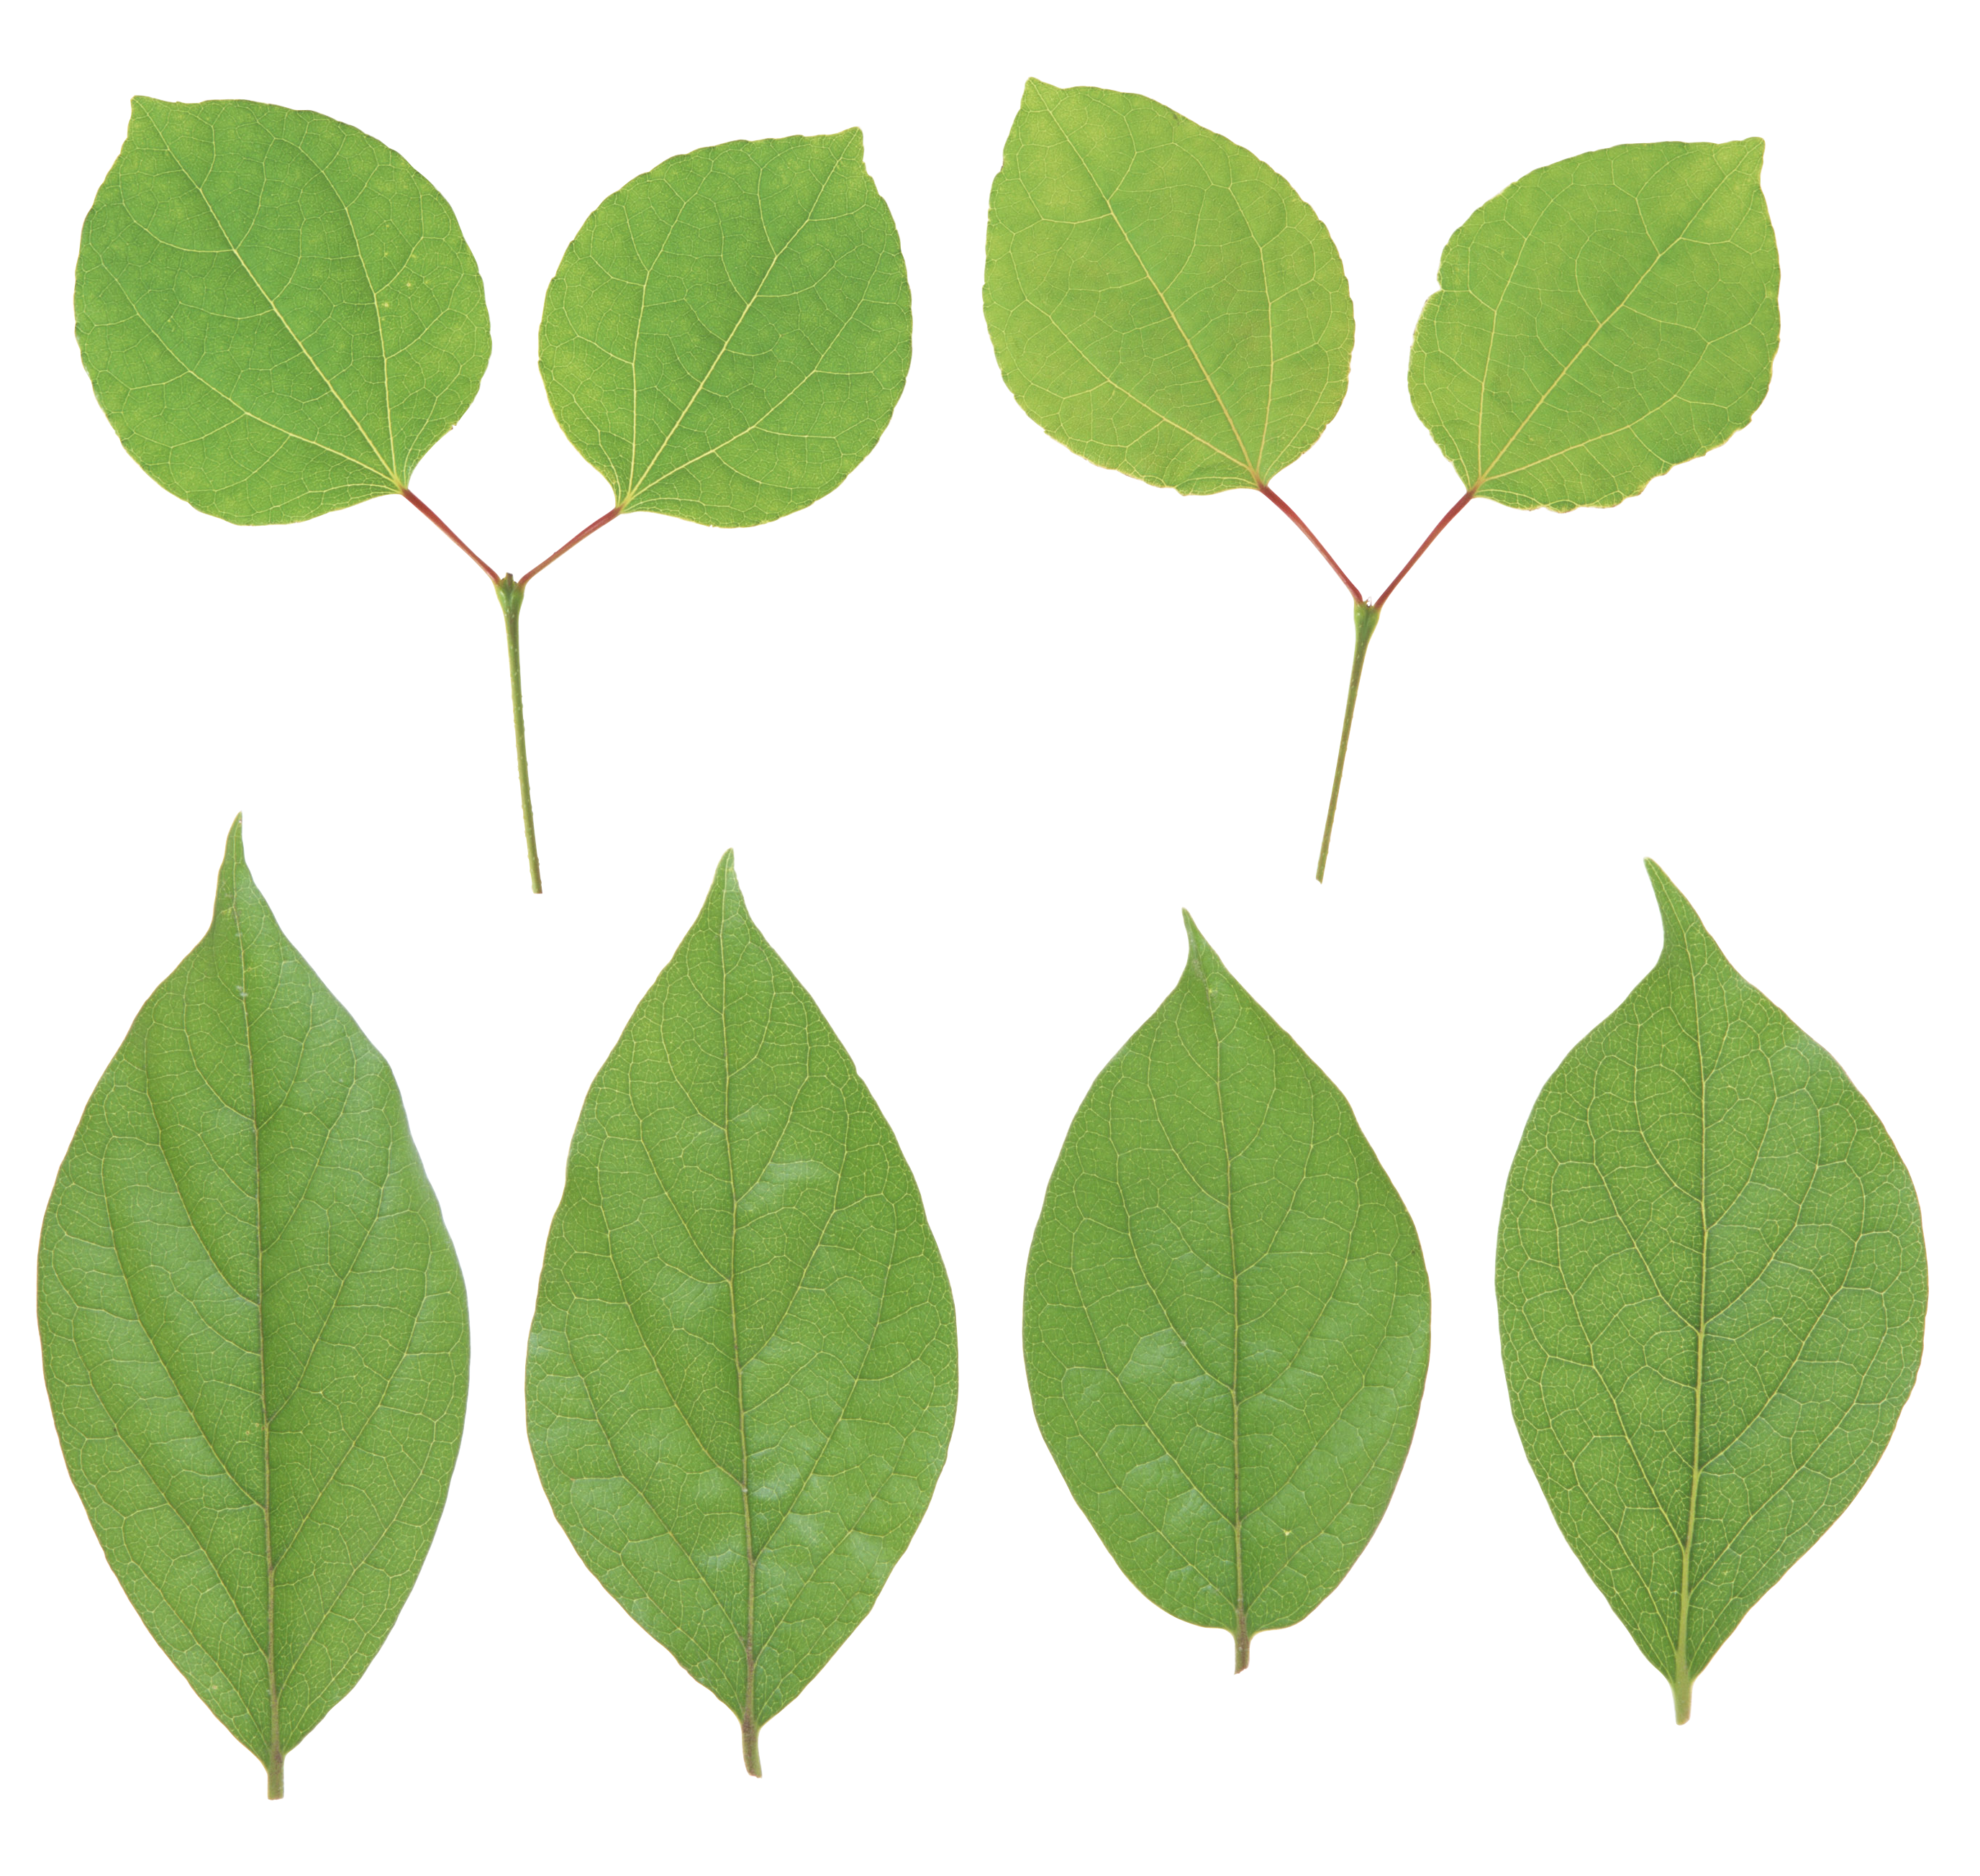 Green Leaves PNG Image | Web Icons PNG